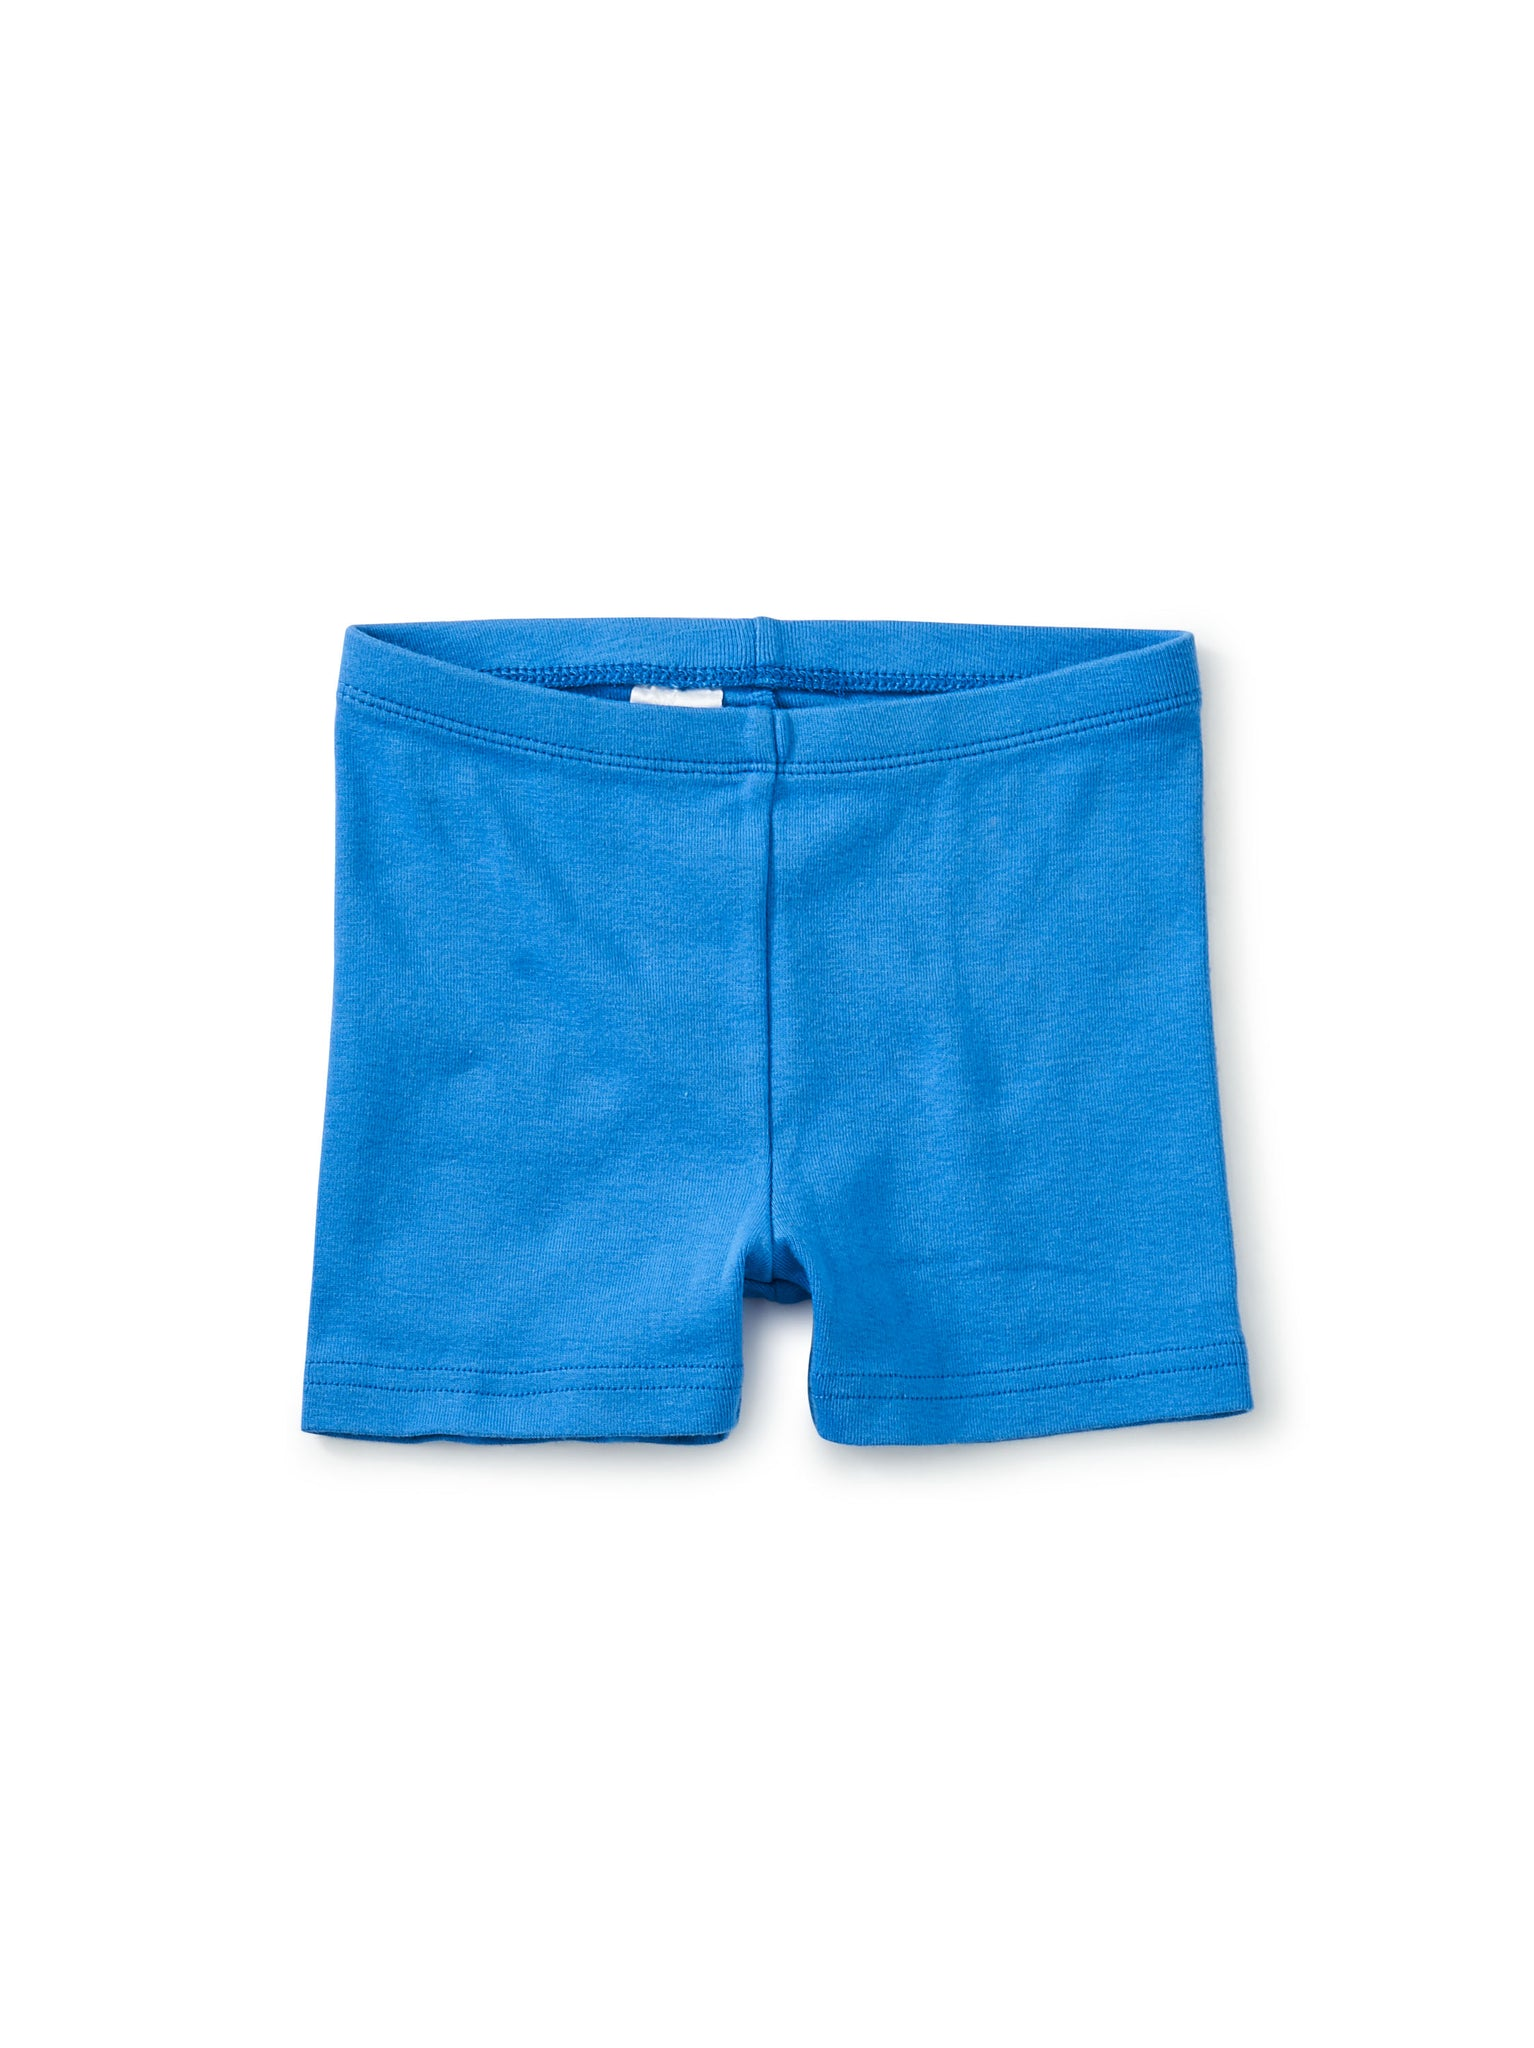 Somersault Shorts-Imperial